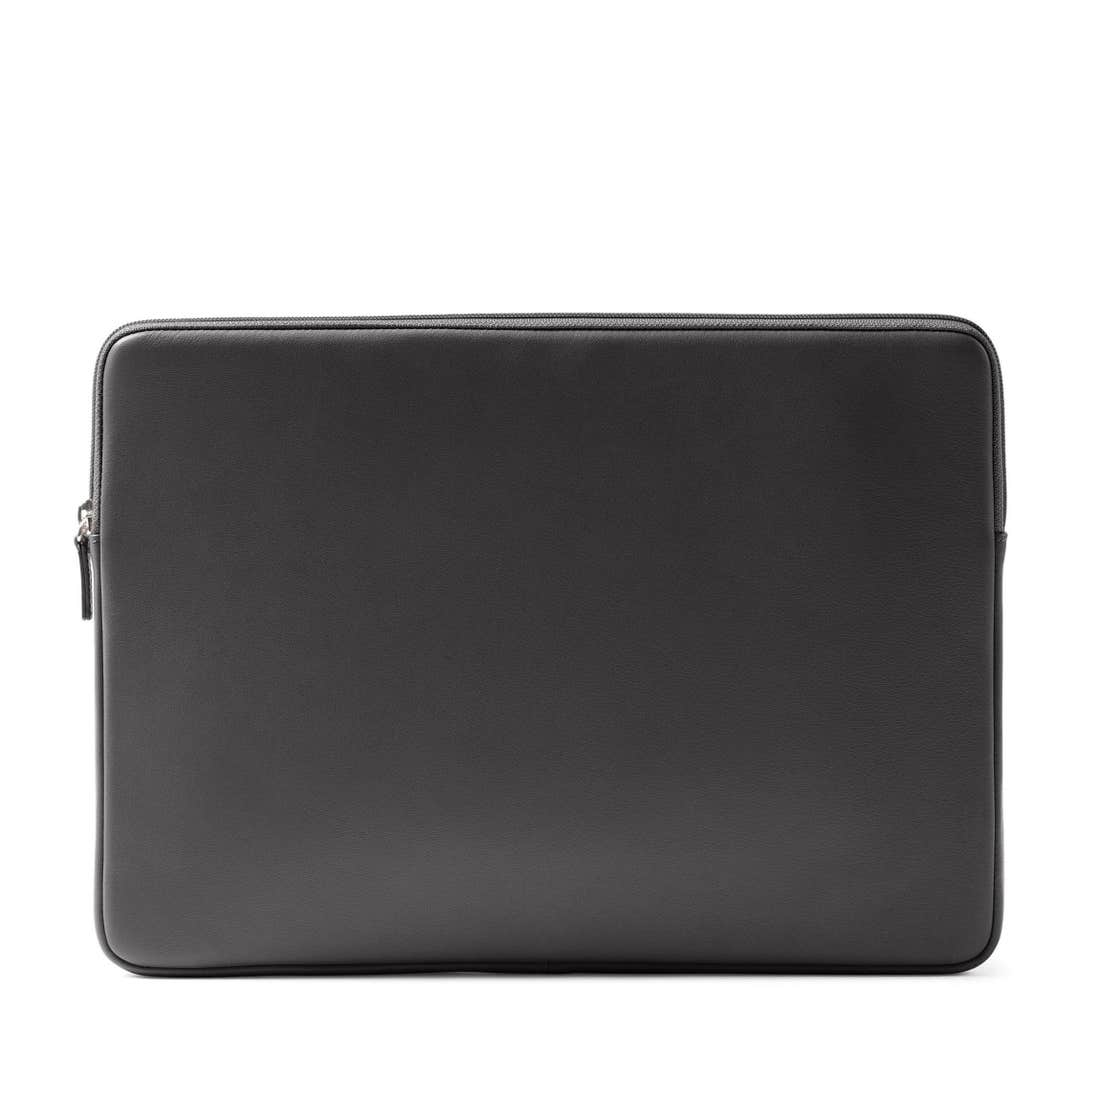 15/16 Inch Slim Laptop Sleeve